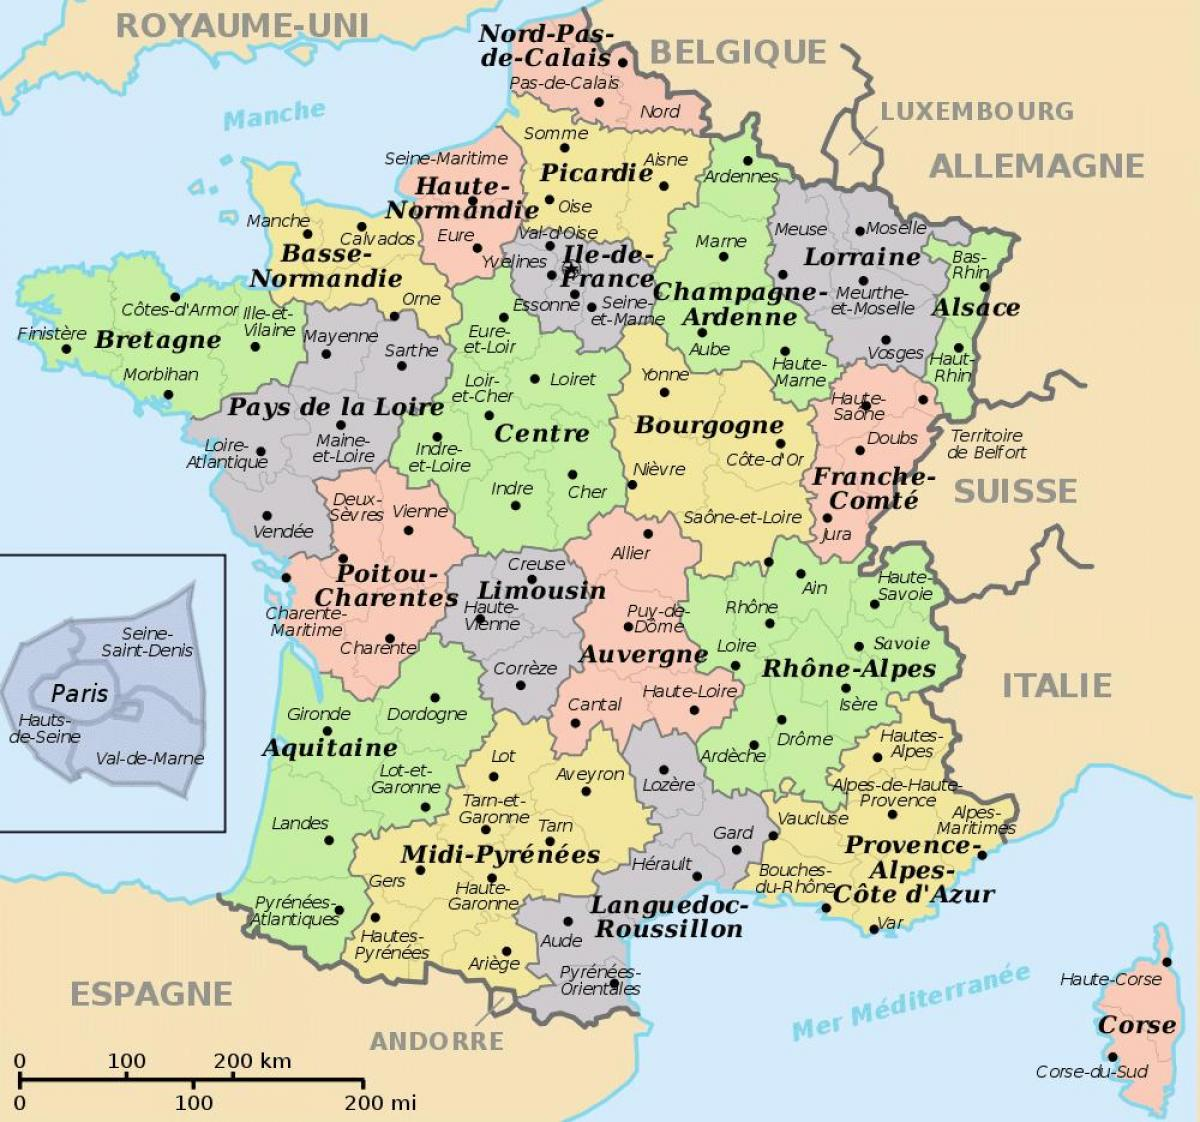 Map Of Areas Of France.France Districts Map Areas Of France Map Western Europe Europe